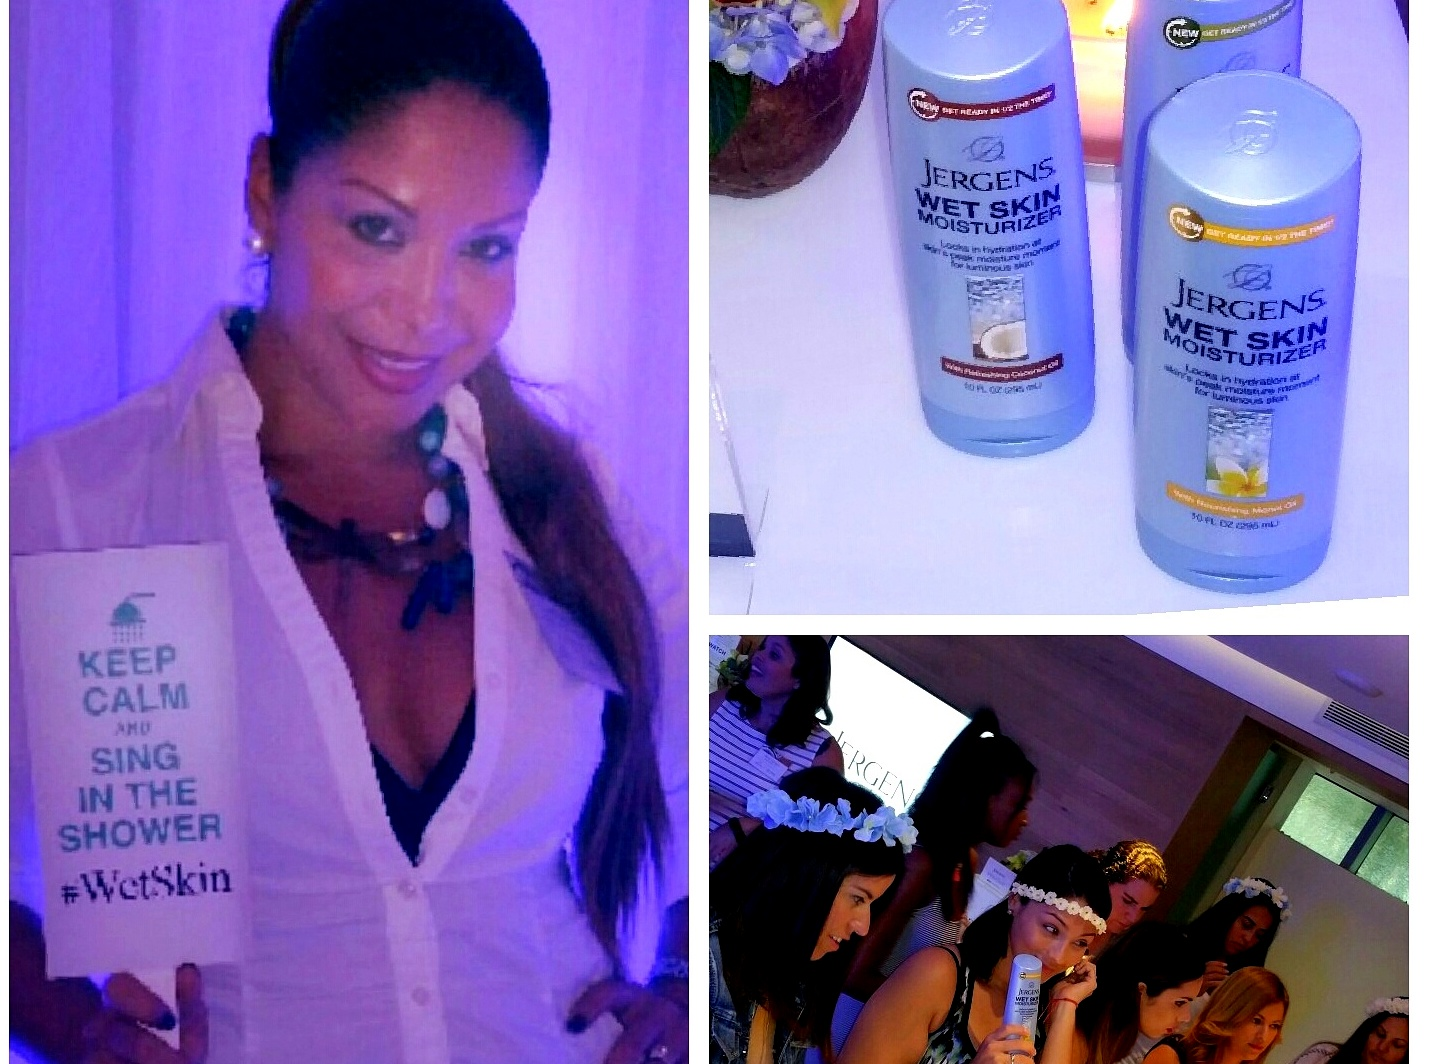 Jergens Wet Skin Moisturizer makes a splash at Miami Swim Week